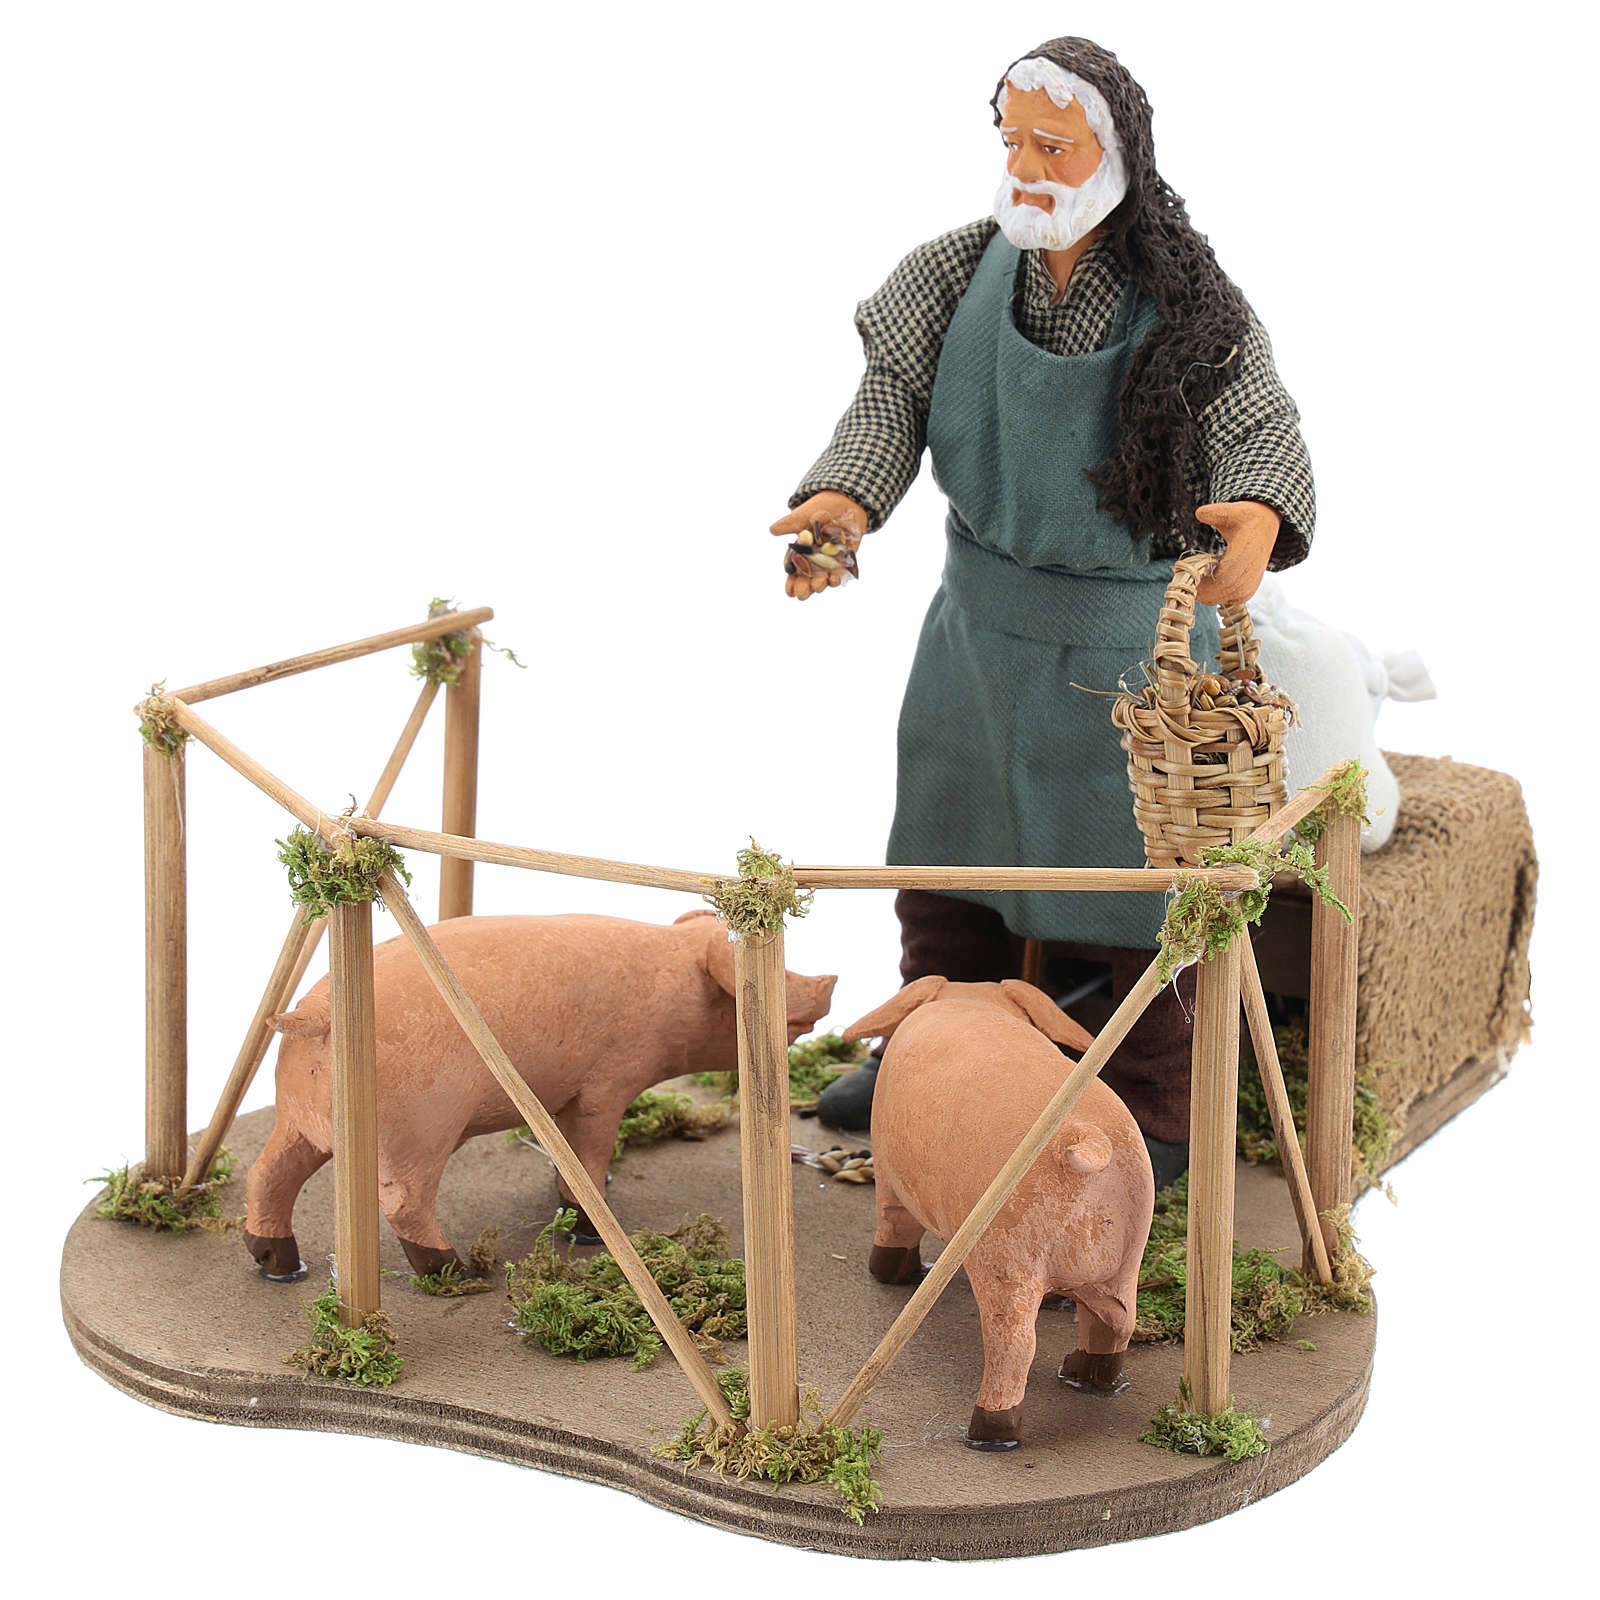 Animated Nativity scene figurine, man feeding pigs 14cm 4